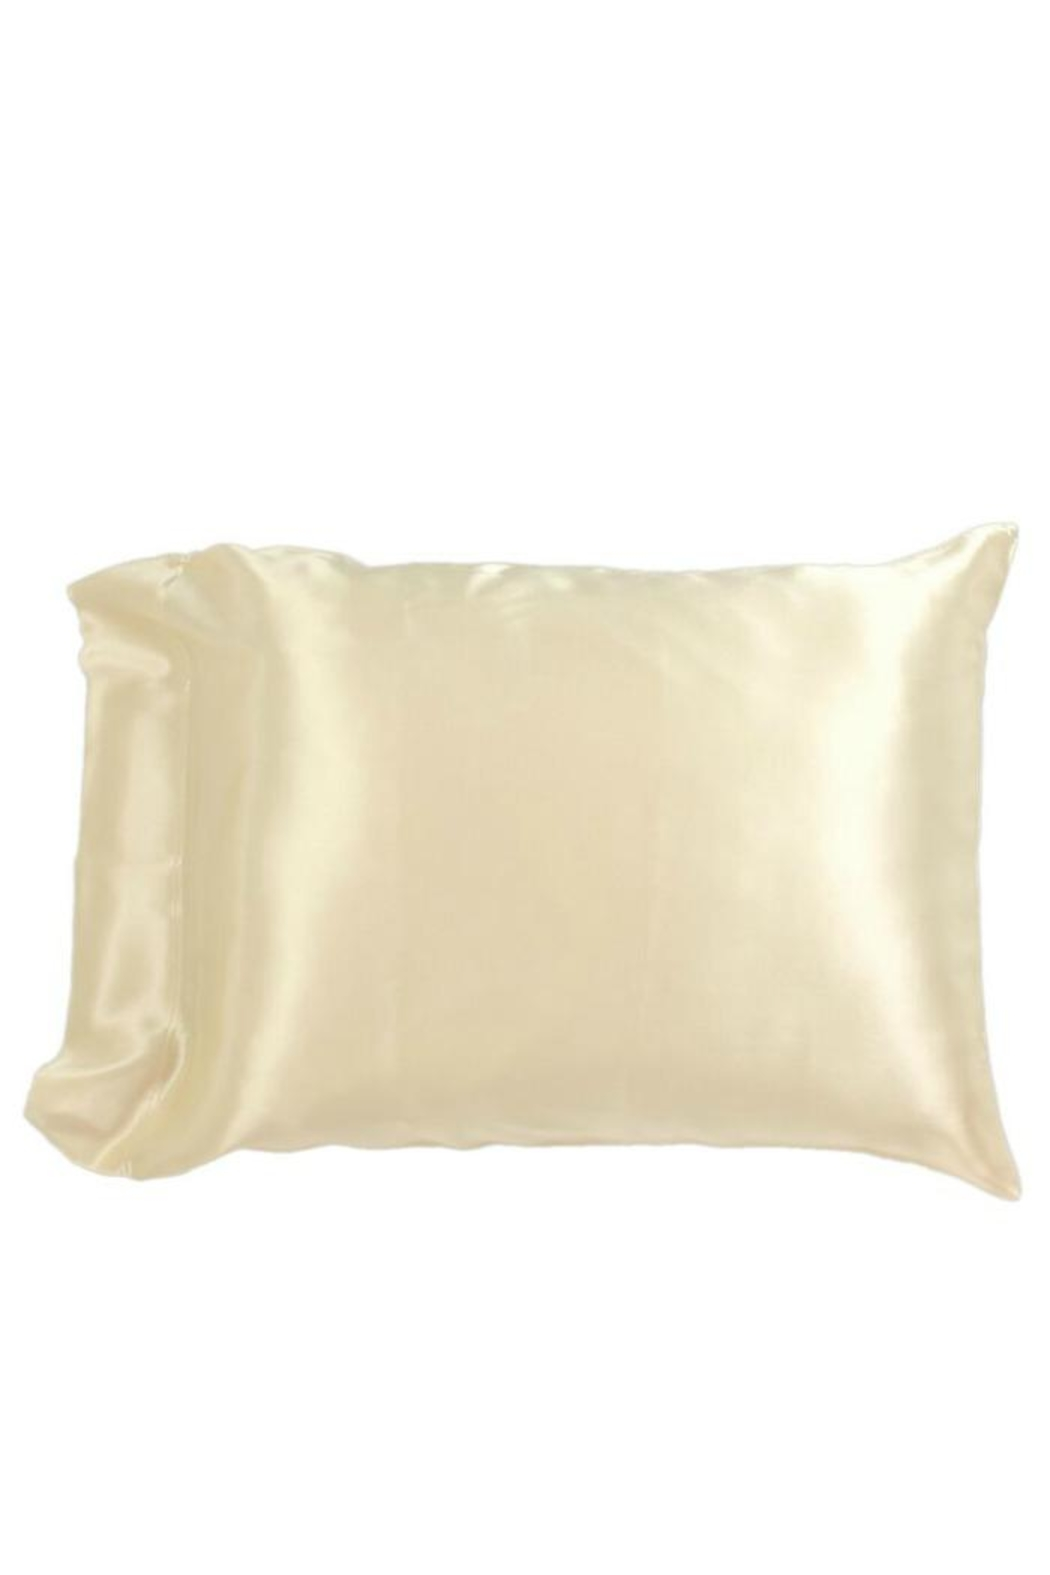 silk pillowcases thickness pillow best zimasilk the article mulberry strategist pillowcase